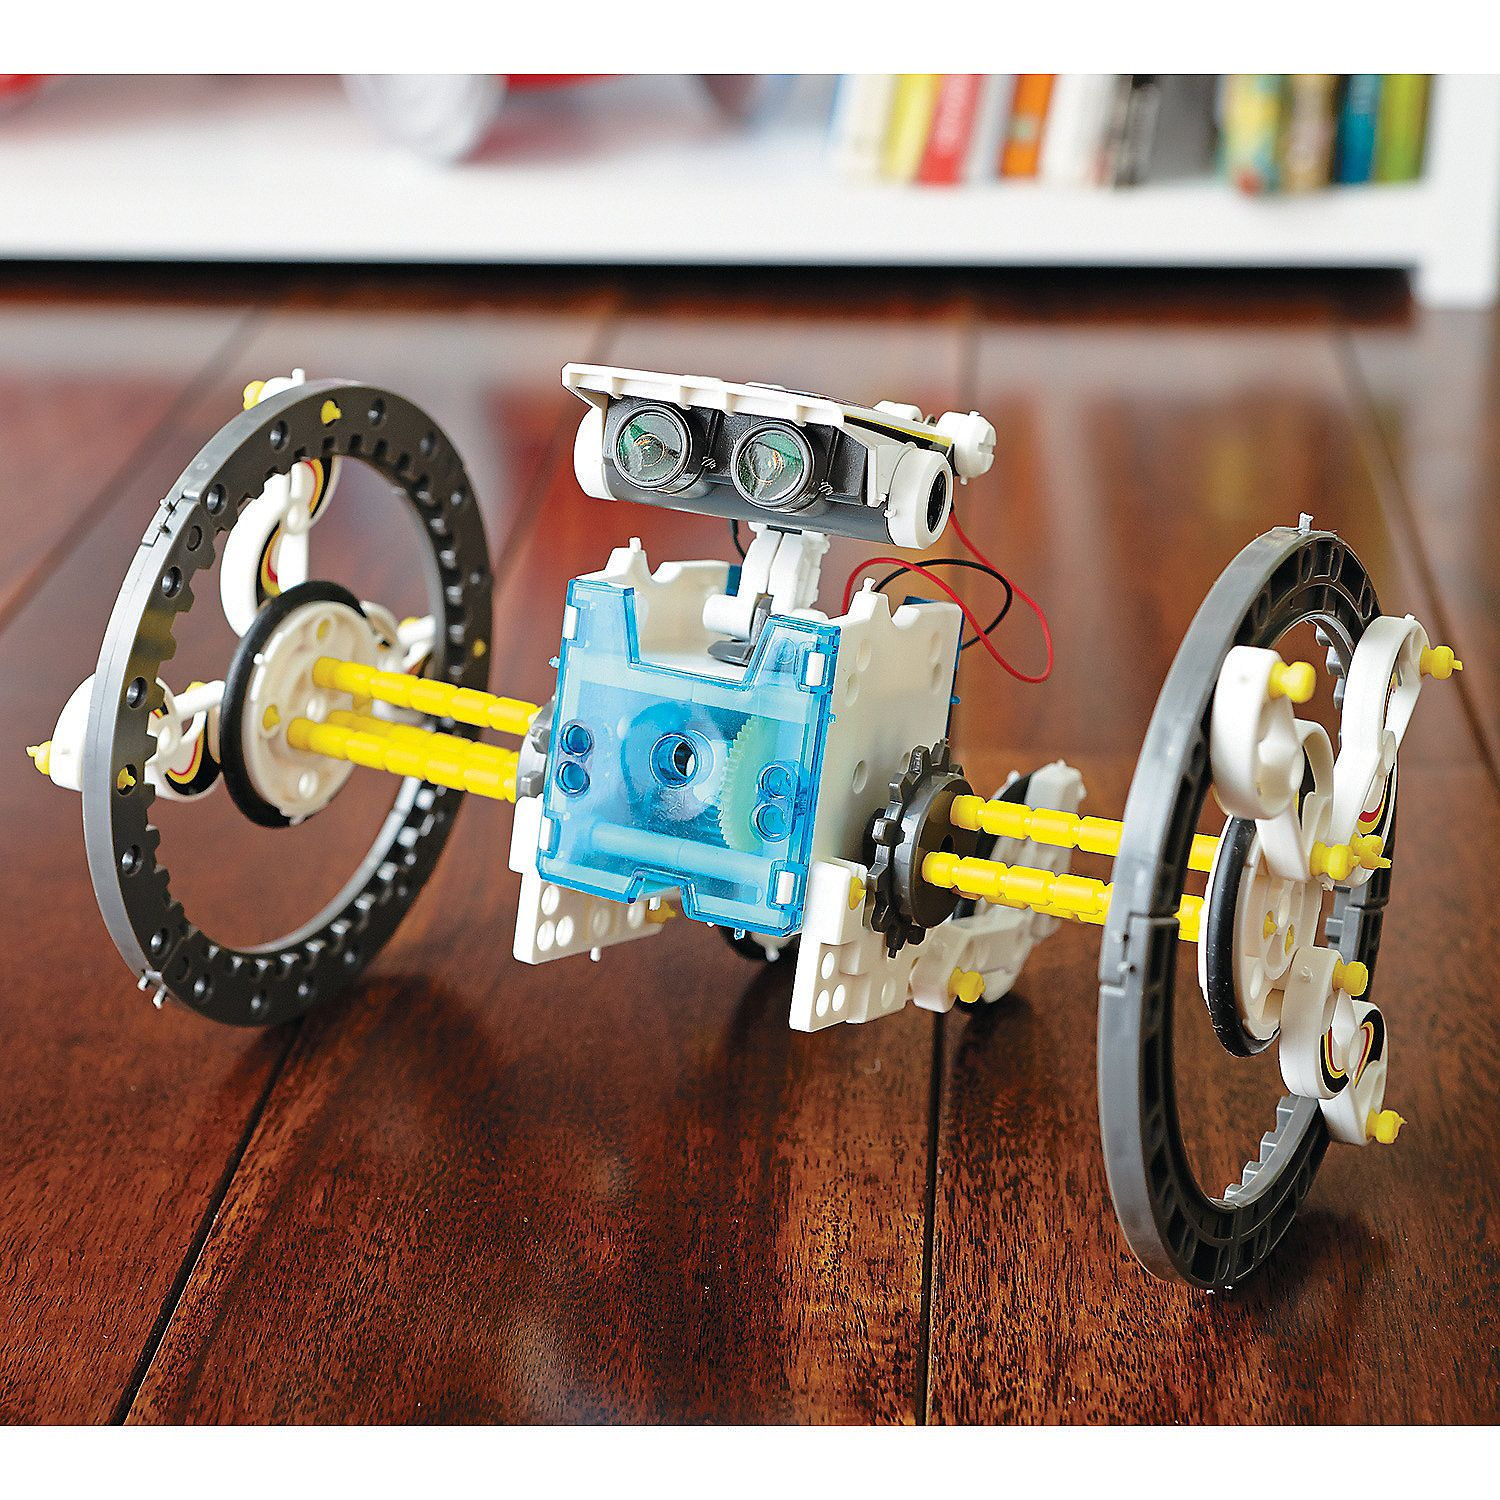 Complete. 14 in 1 Educational Solar Robot Kit Never Used